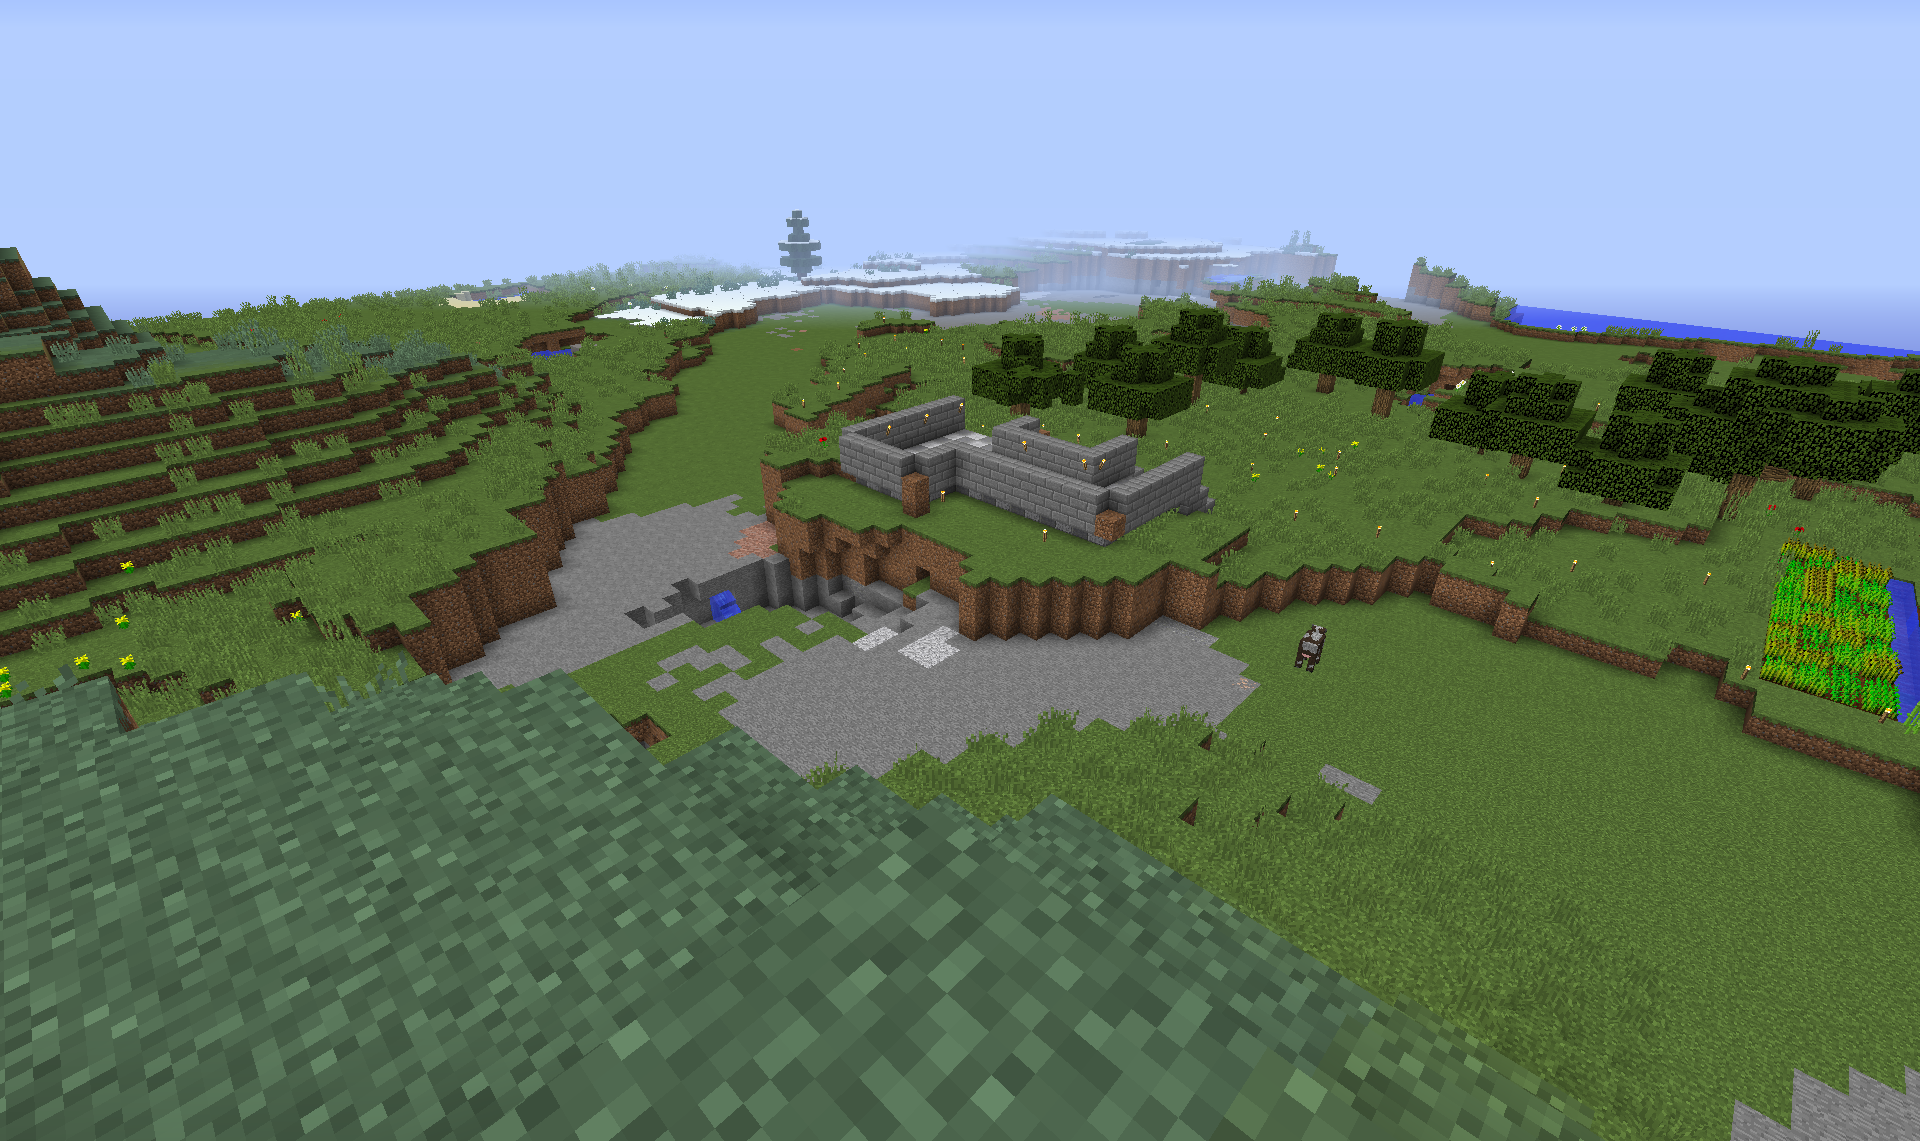 This and the next few shots will be of the area surrounding the Island to show how big I want this to be.